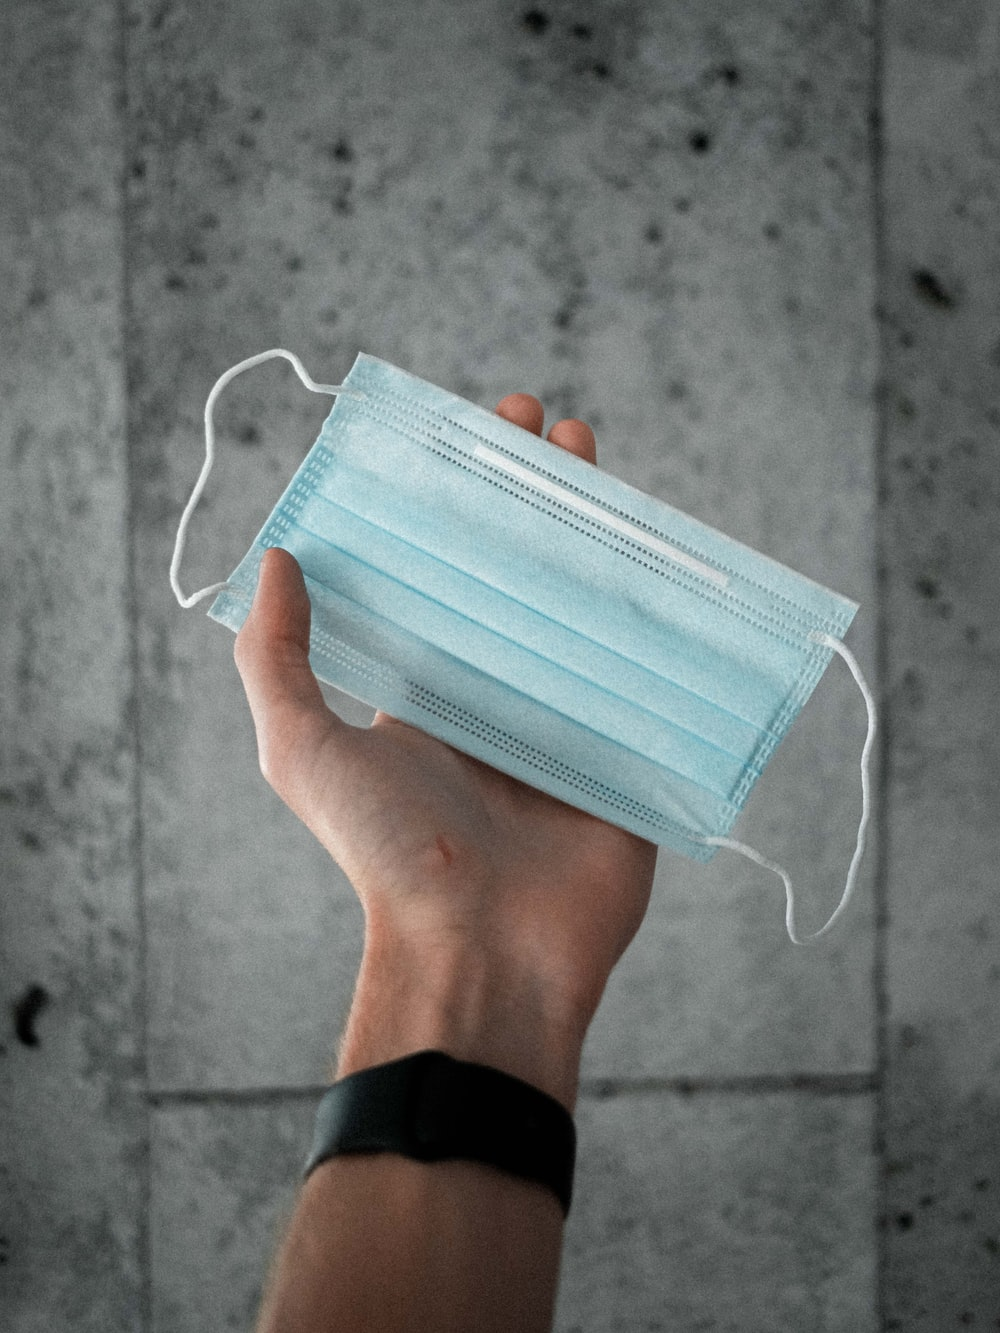 person holding blue and white striped pouch